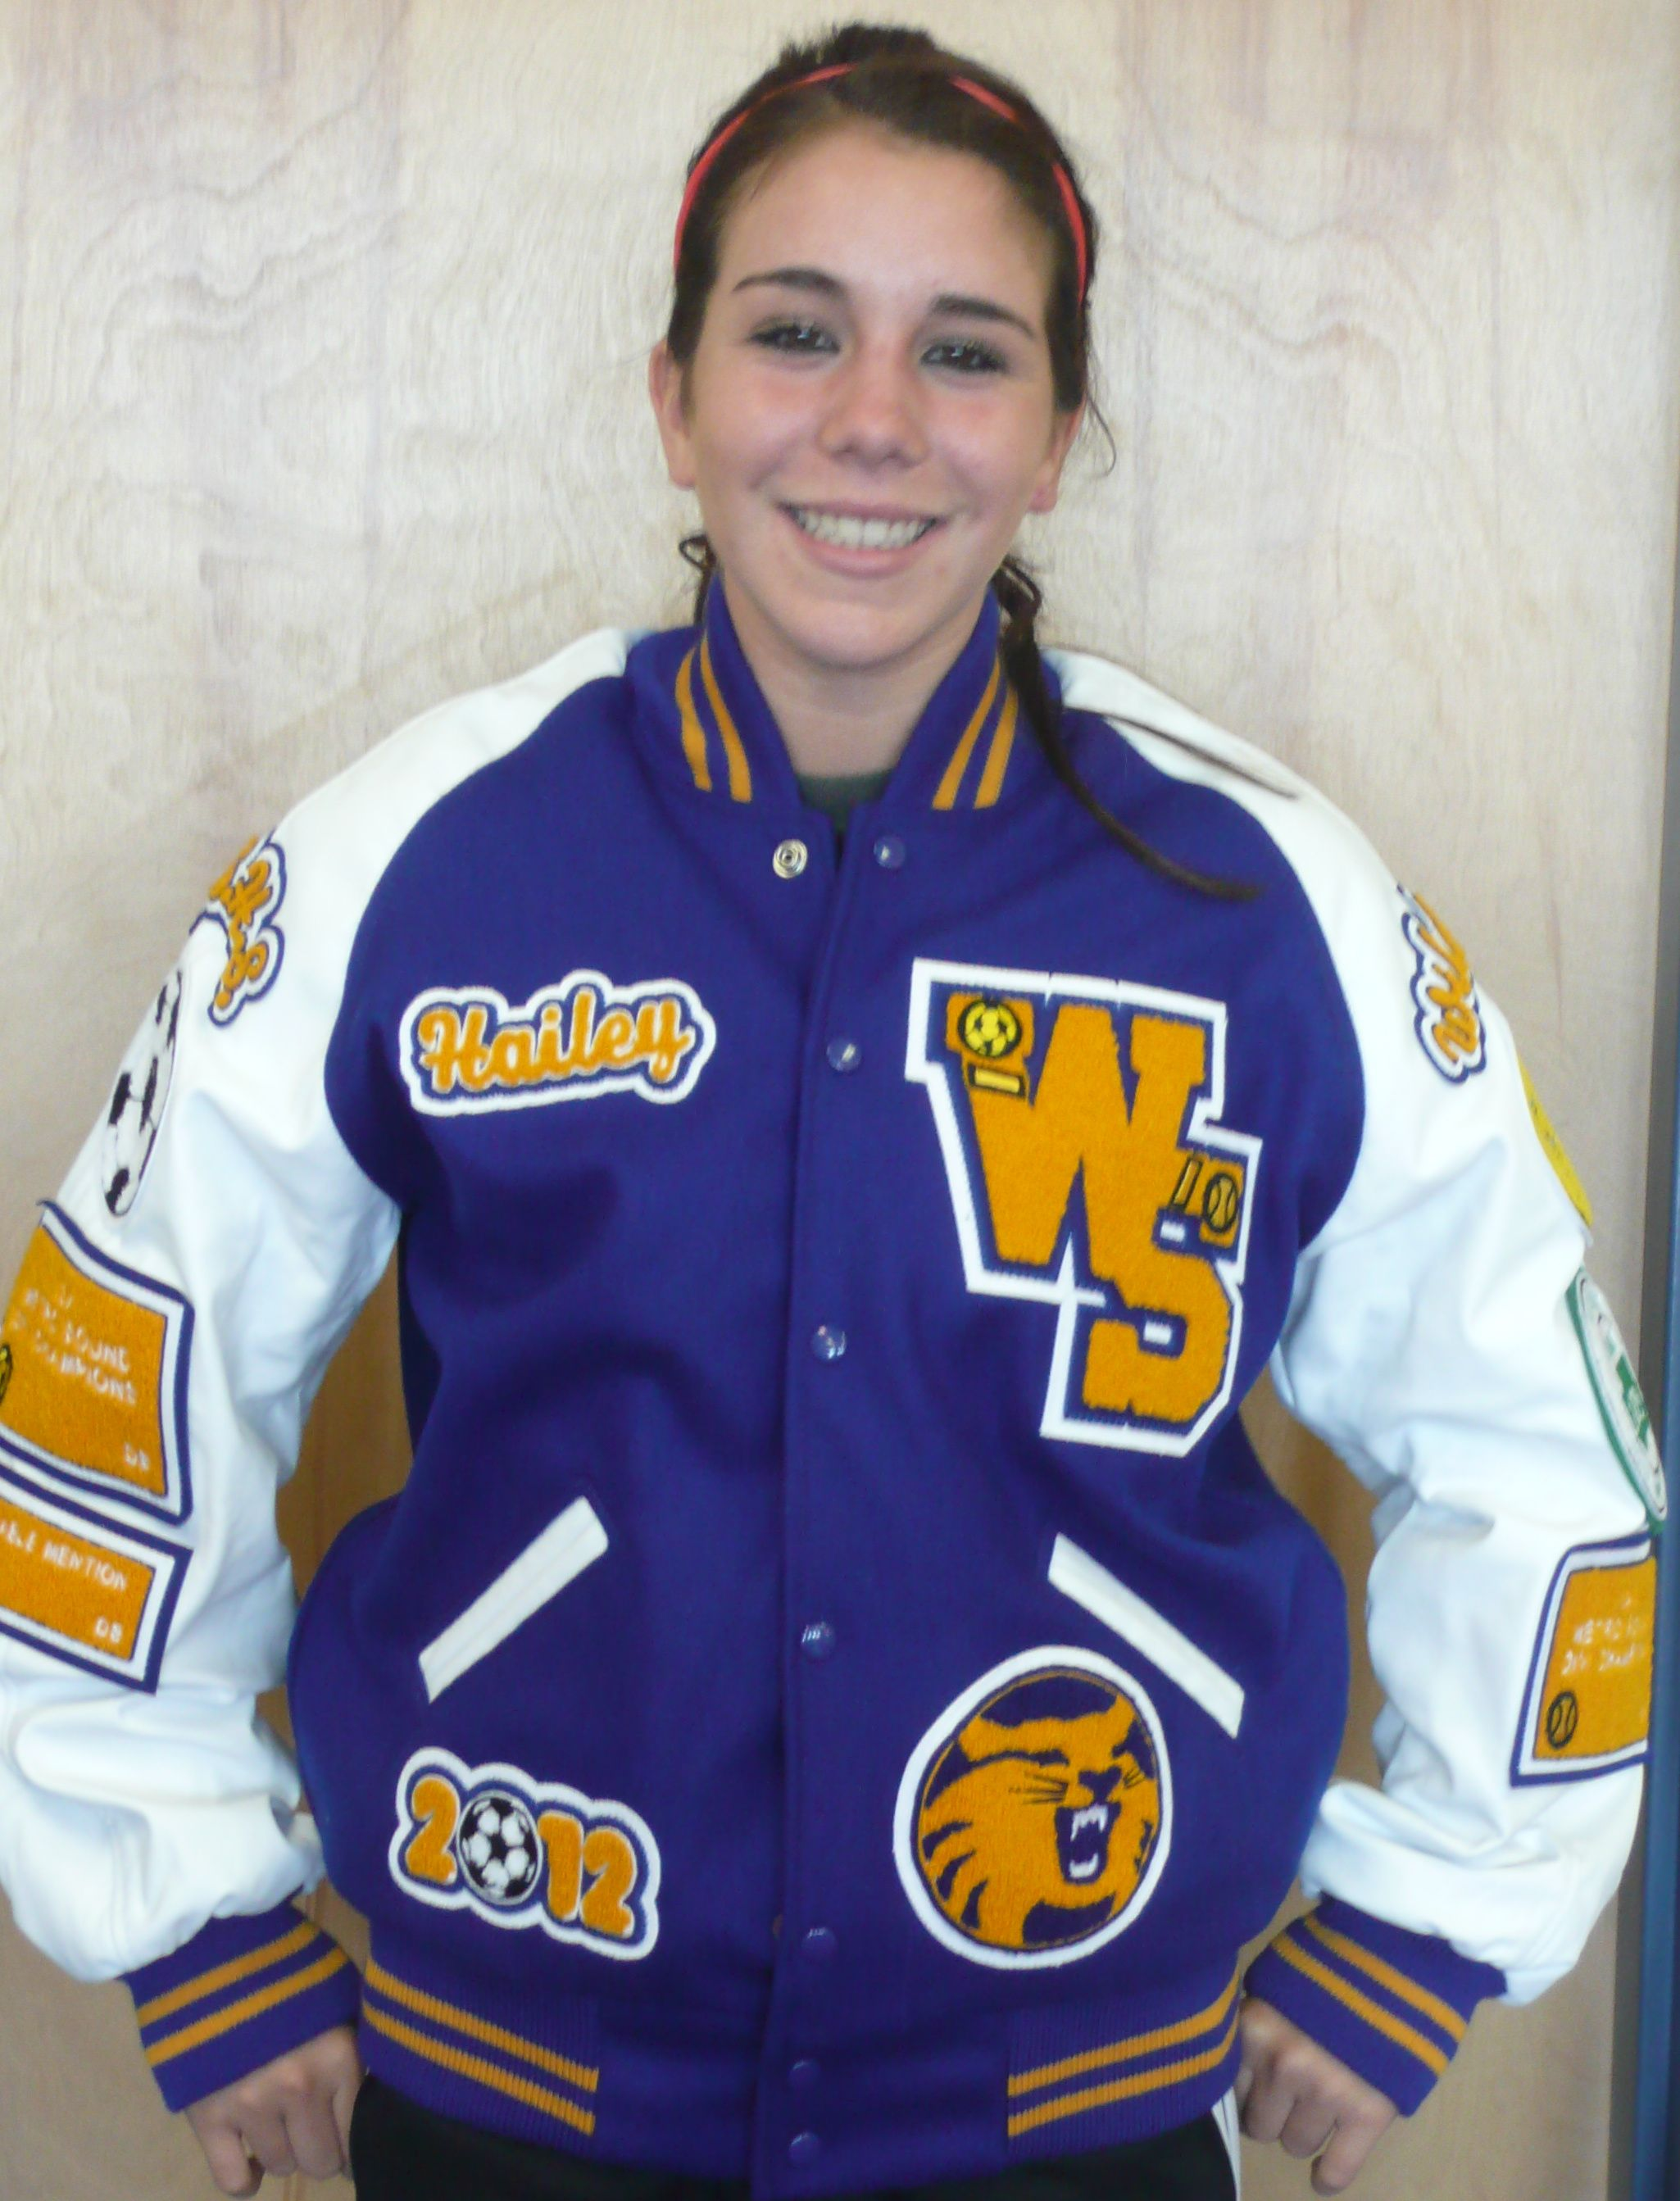 Pin By National Achiever On Letterman Jackets Varsity Letterman Jackets Letterman Jacket Letterman Jacket Ideas